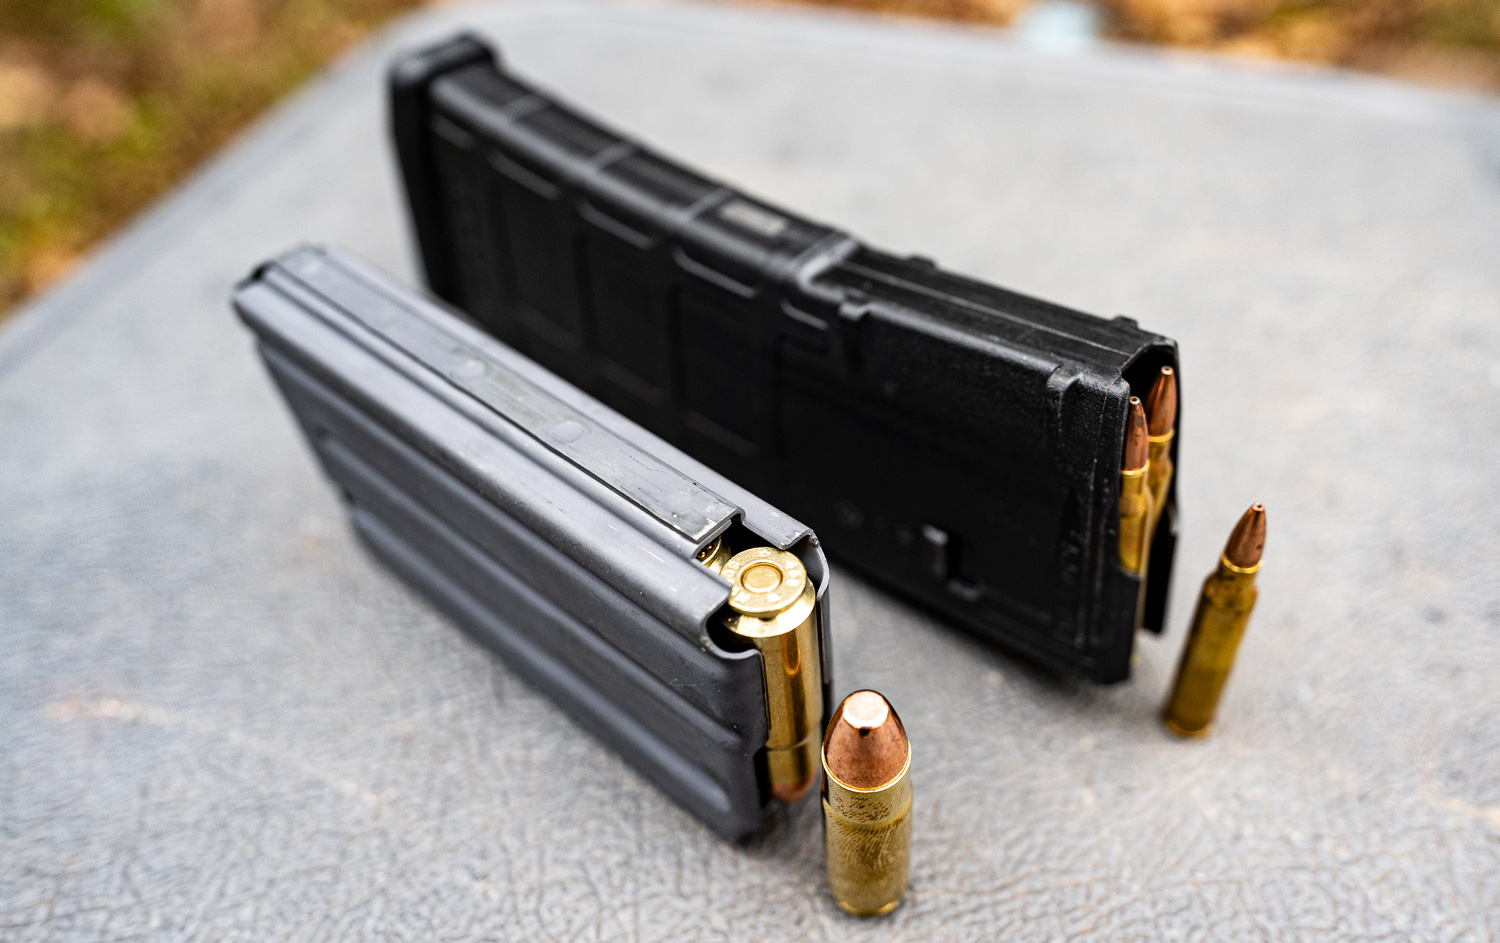 Rifle magazines demonstrating the capacity difference between 223 and 458 SOCOM